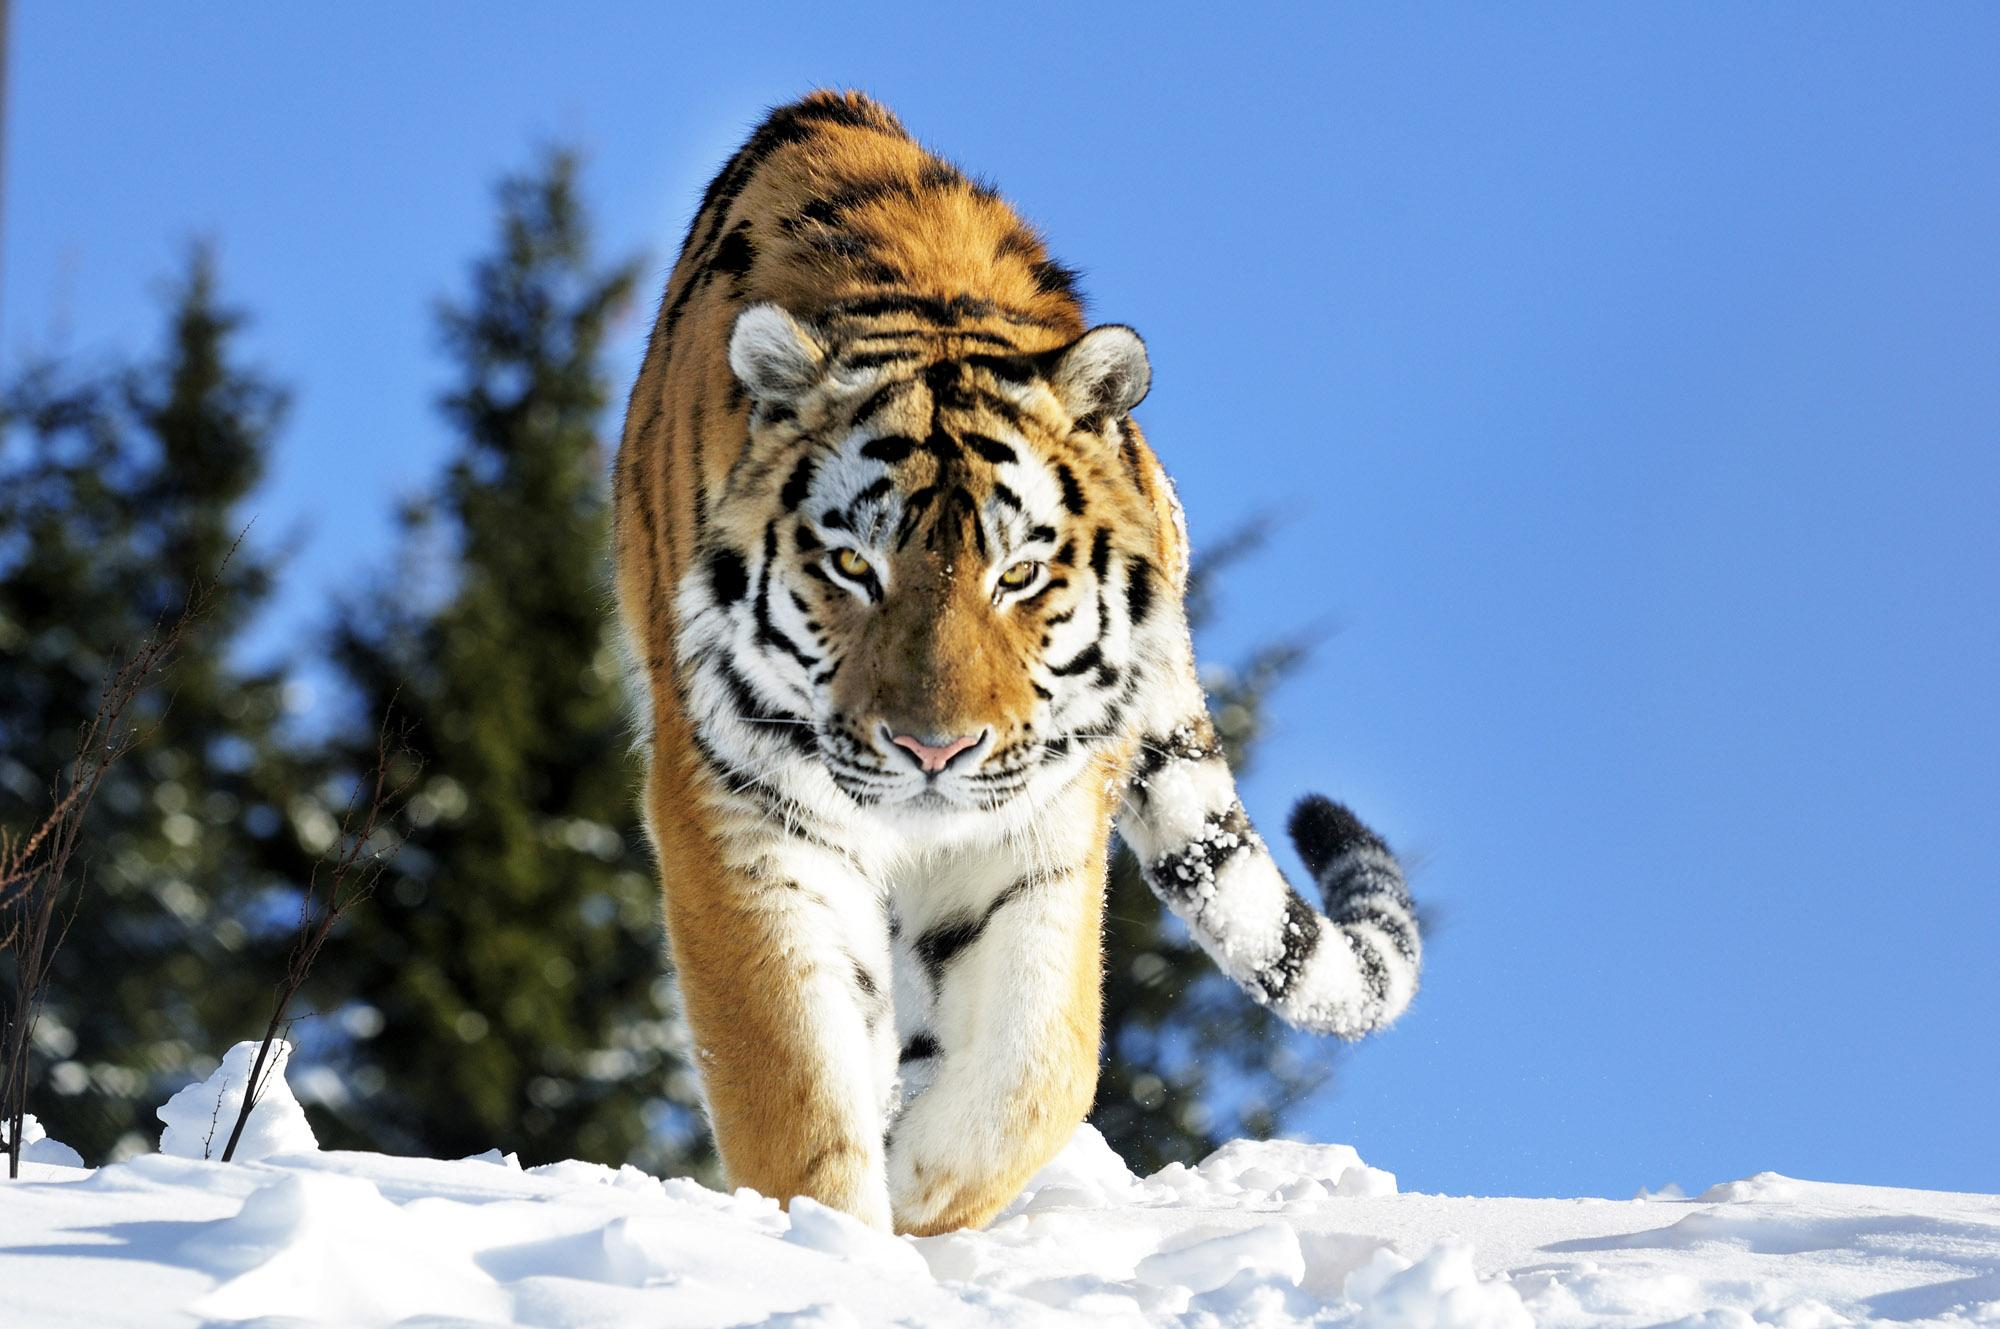 The Siberian tiger is one of the world's largest wild cats and can reach up to 350 kilograms in weight and averages 3 to 4 metres in length. – © Grönklittsgruppen